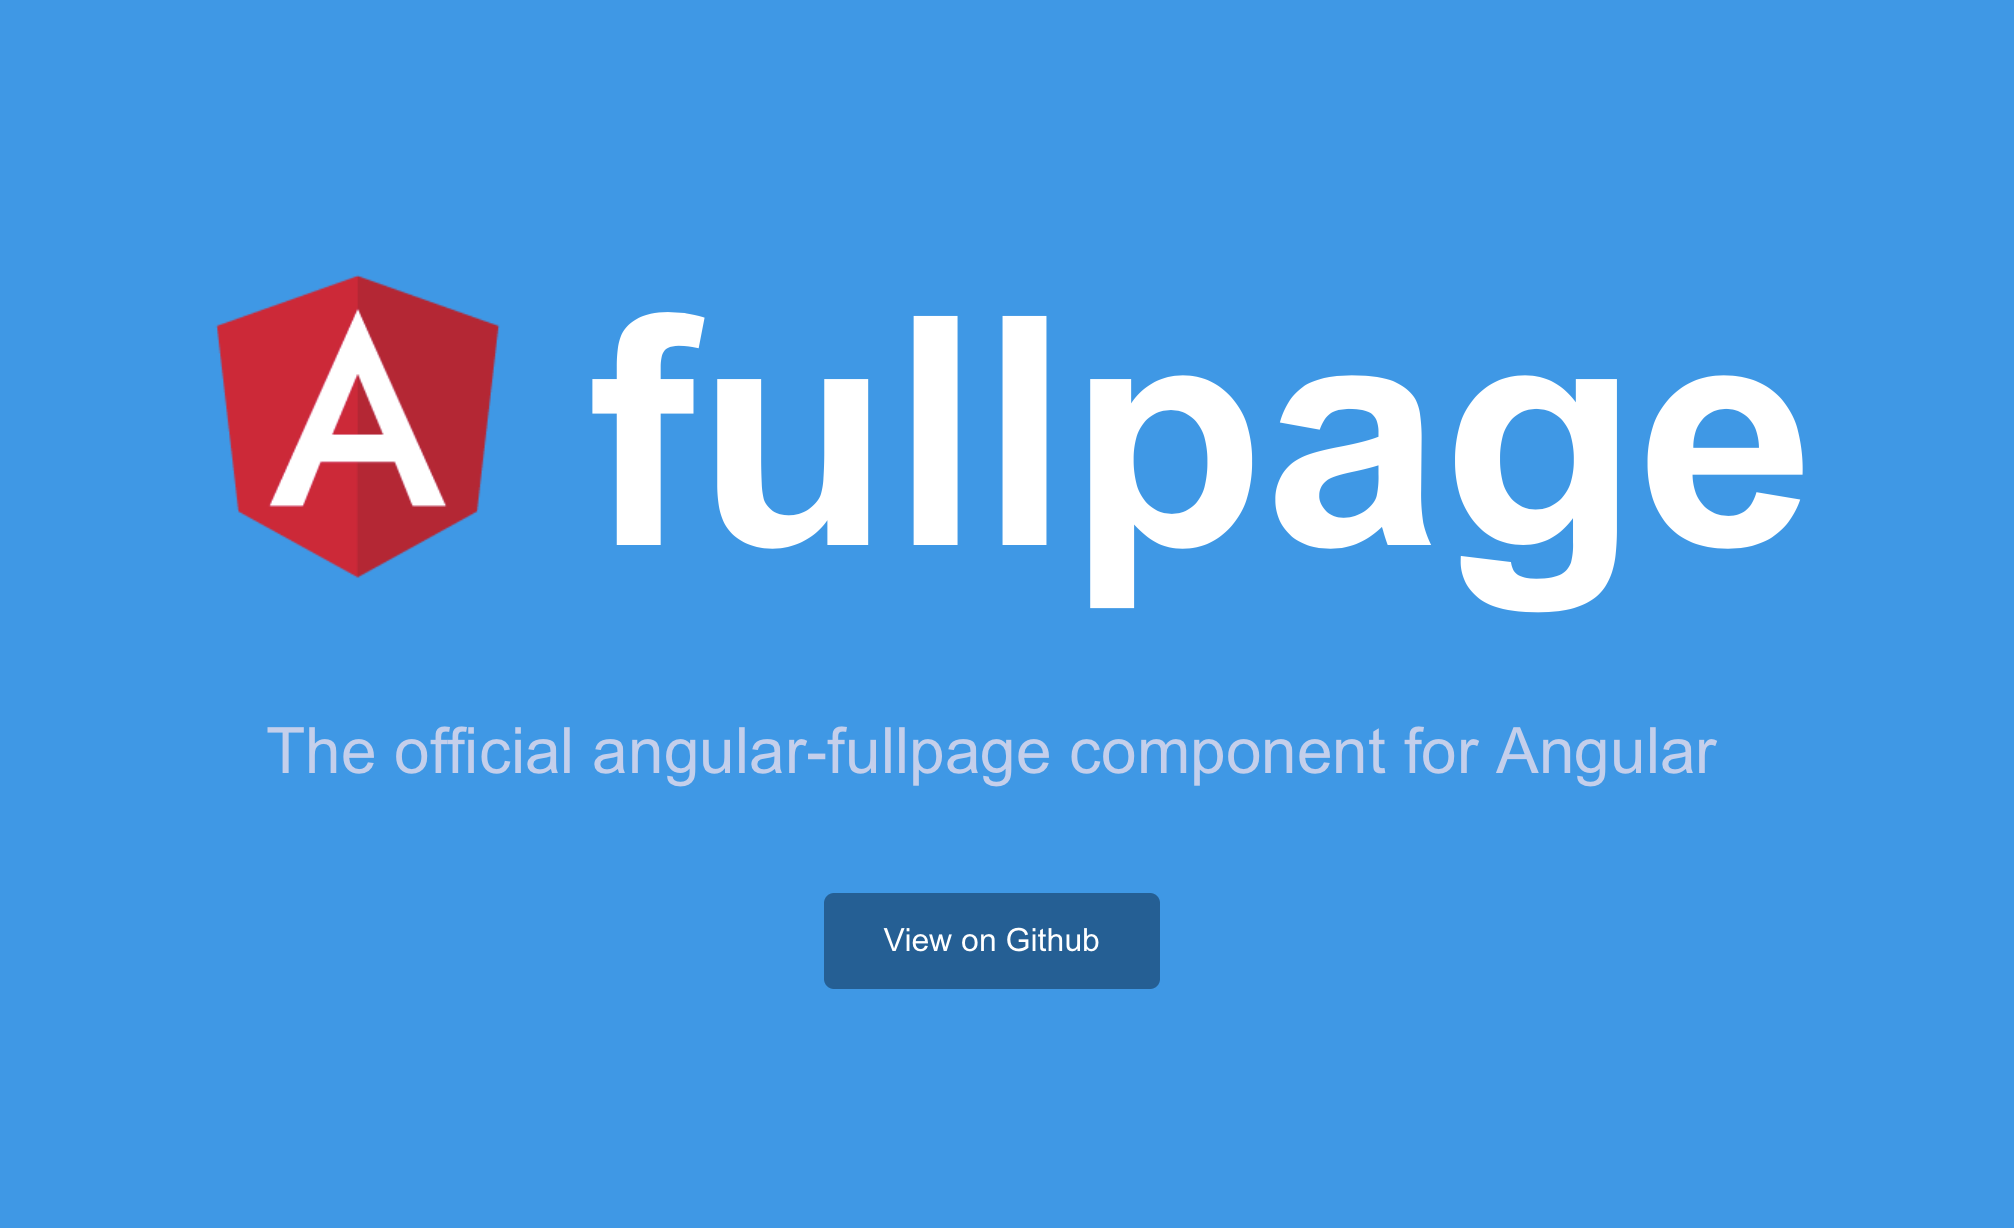 Angular fullpage - official angular-fullpage component - Angular